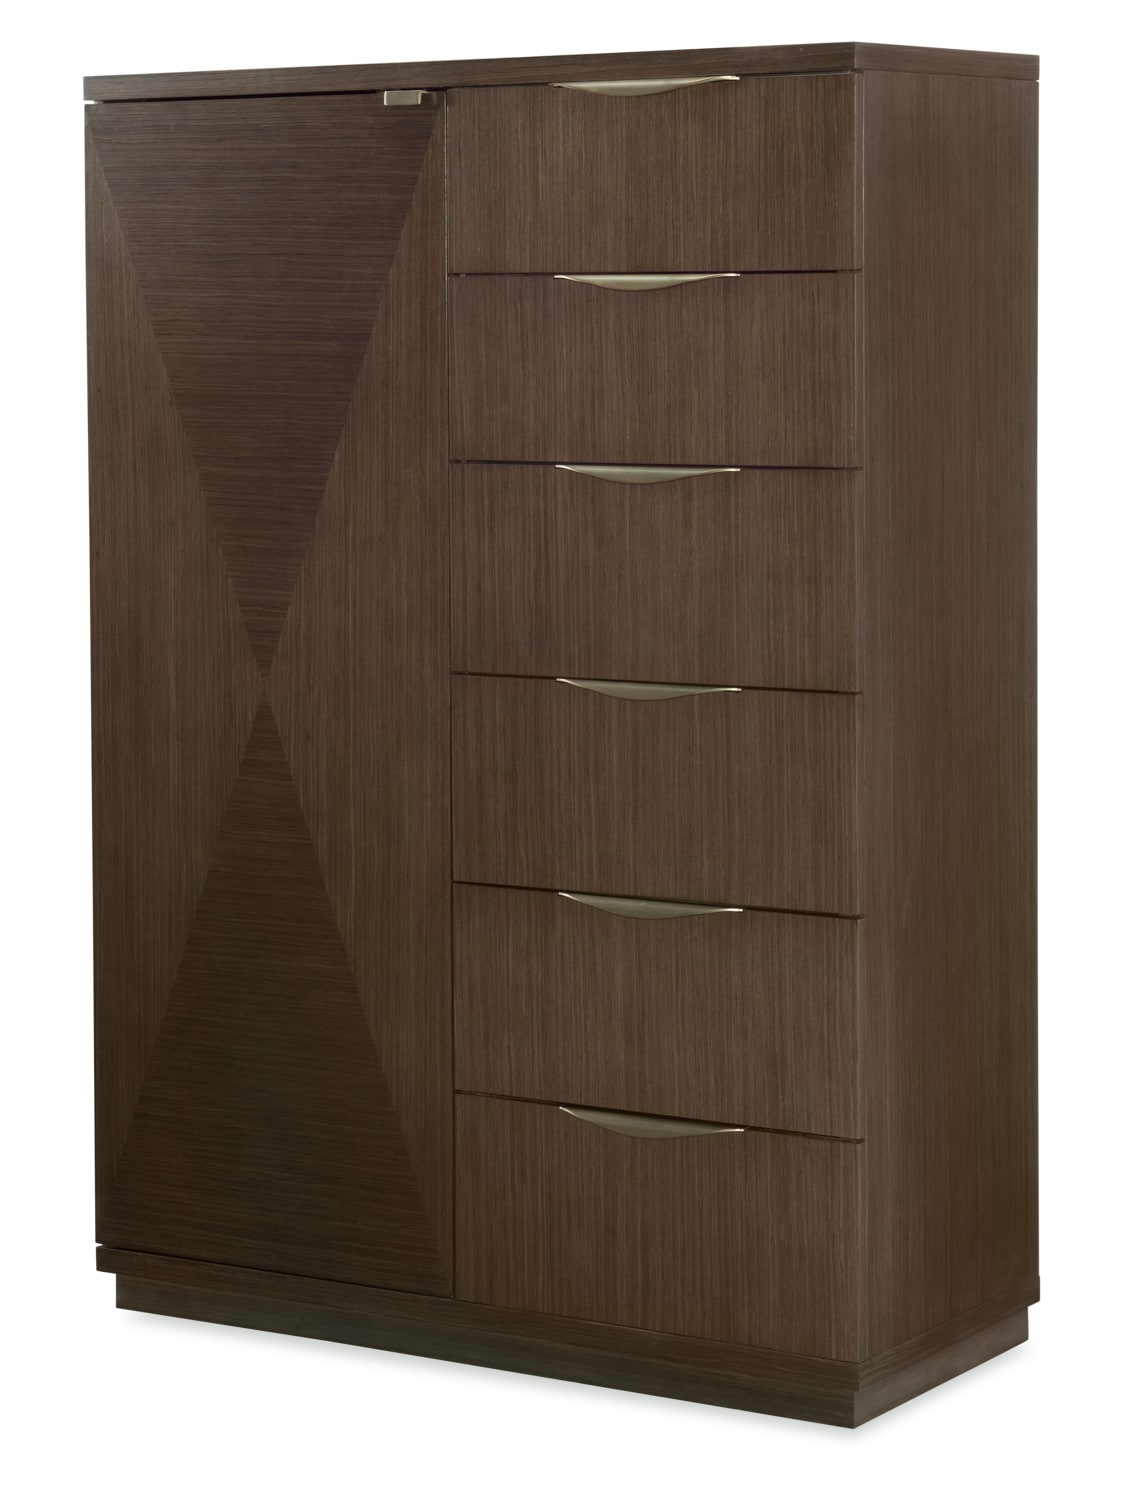 Rachael Ray Soho Door Chest - Ash Brown